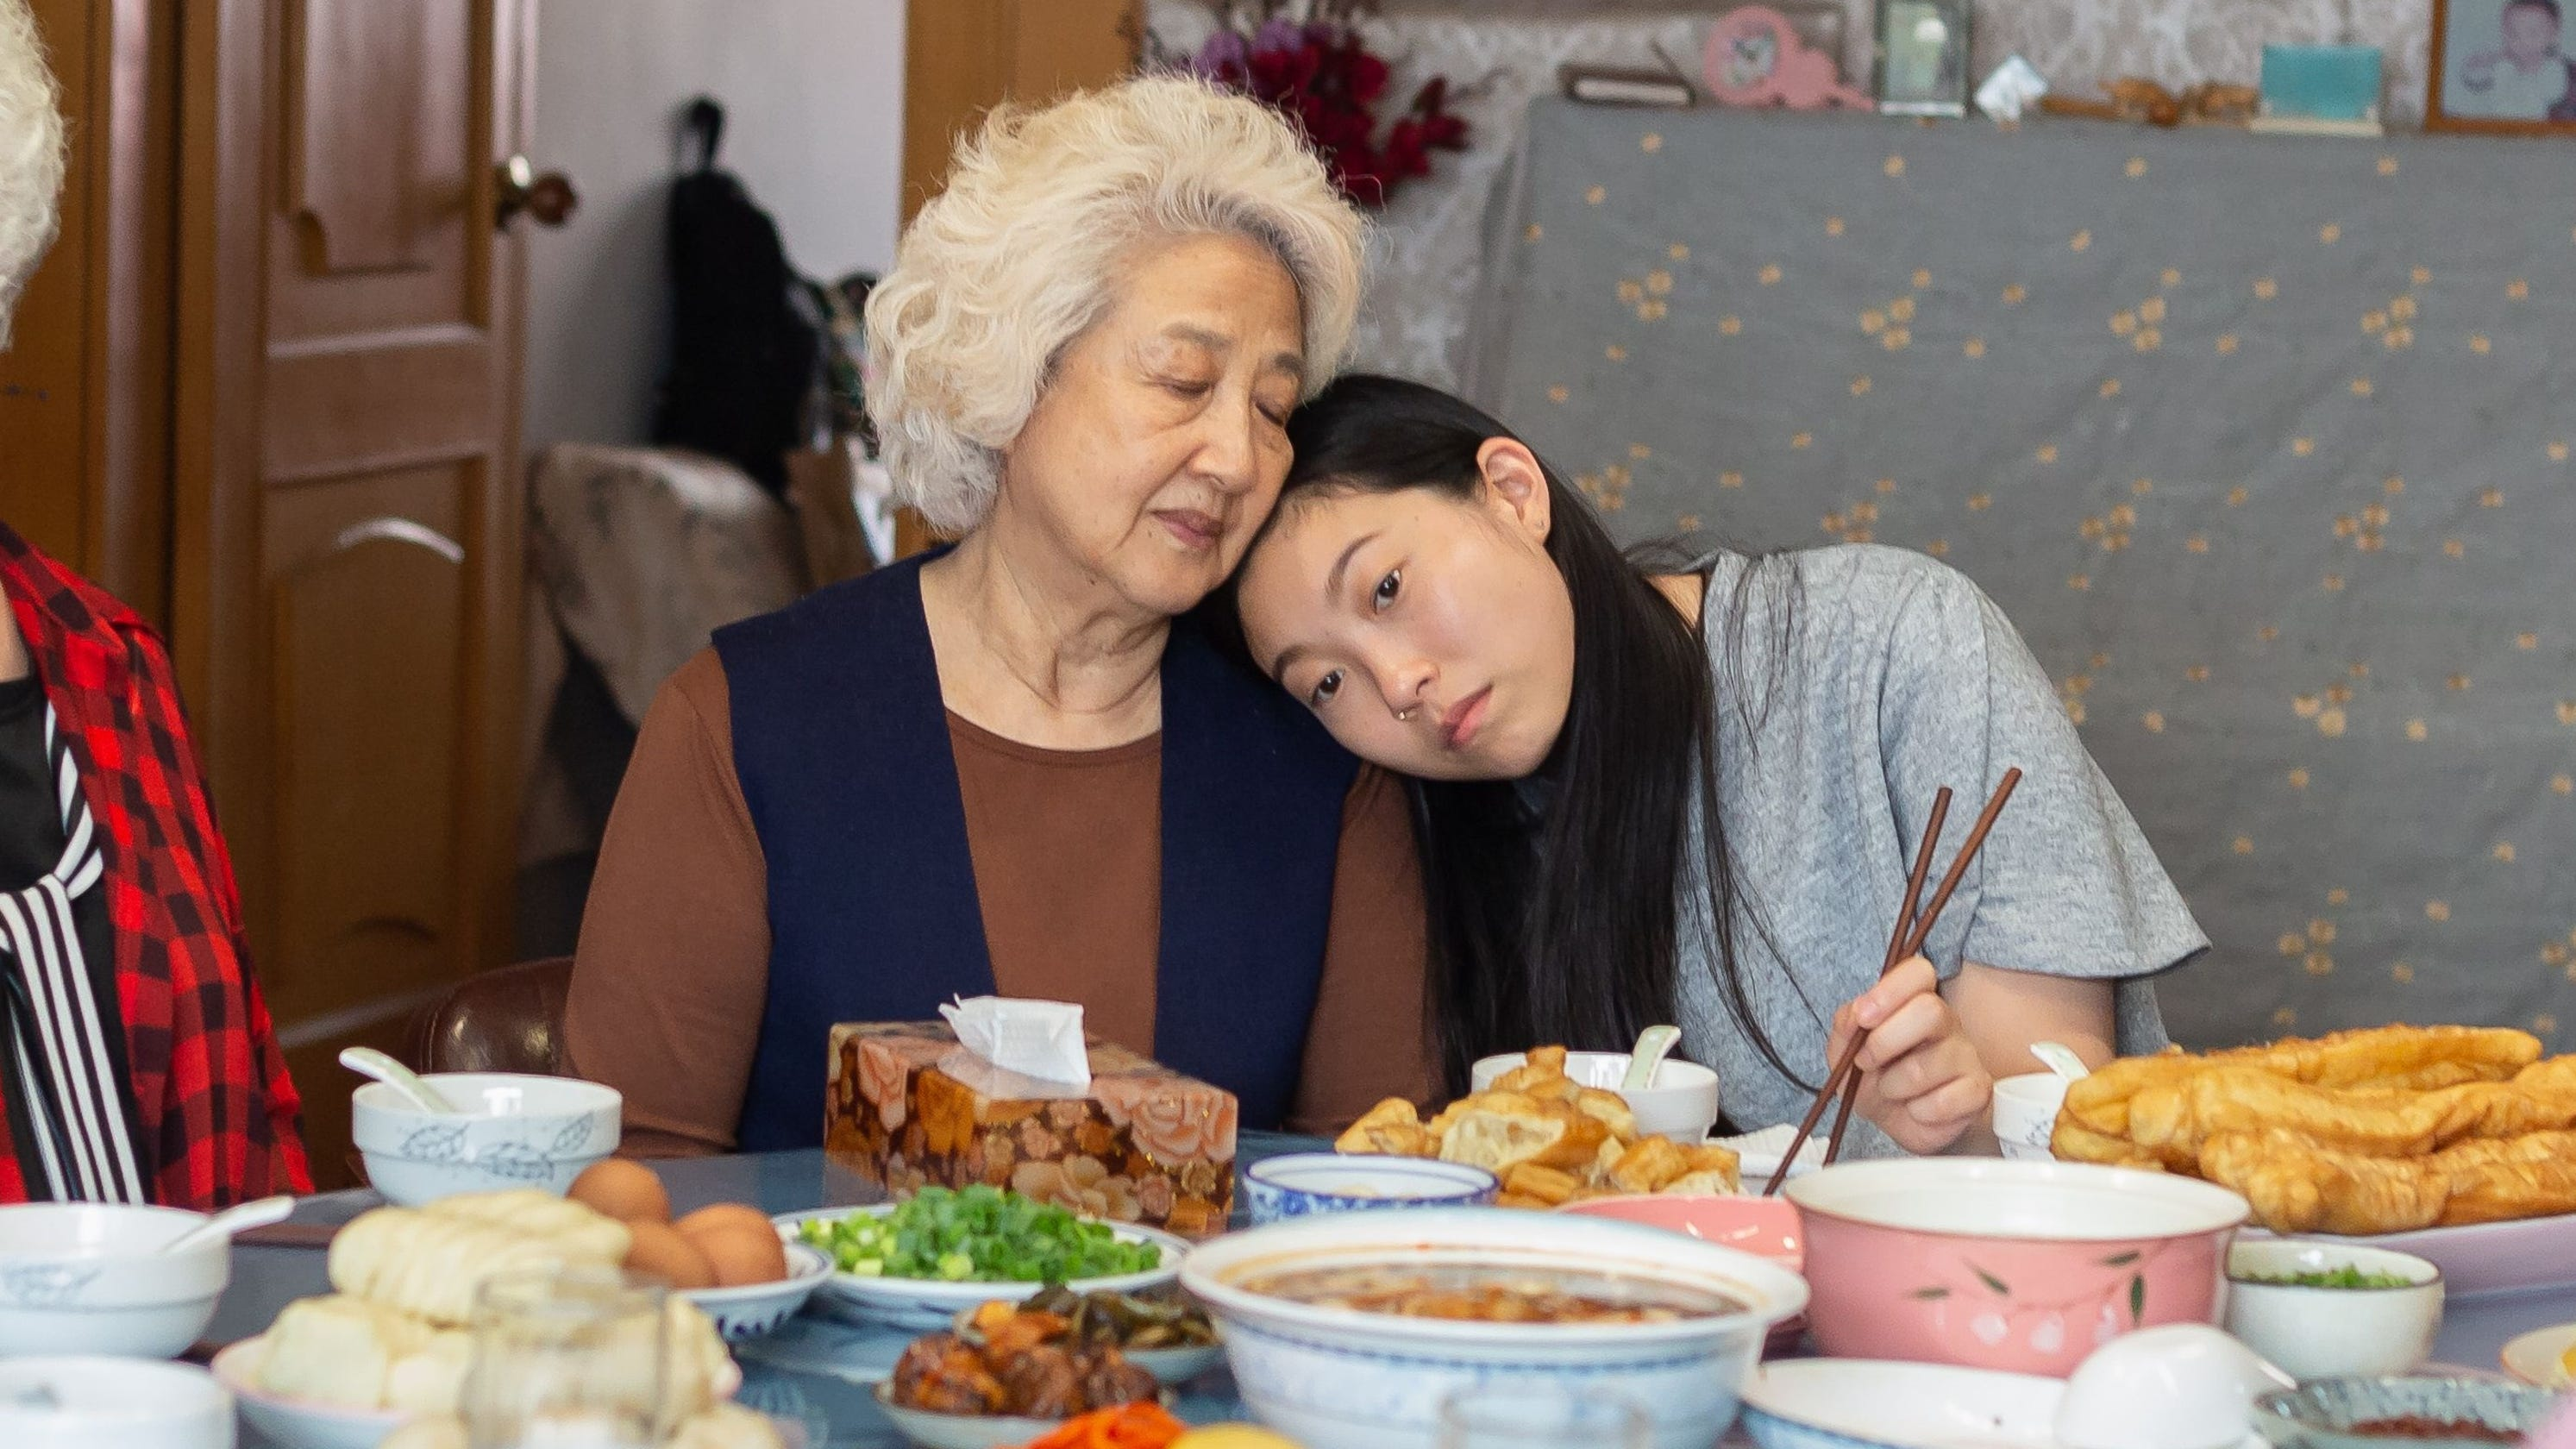 Would you lie to your loved one about dying? Awkwafina's 'The Farewell' raises complex questions